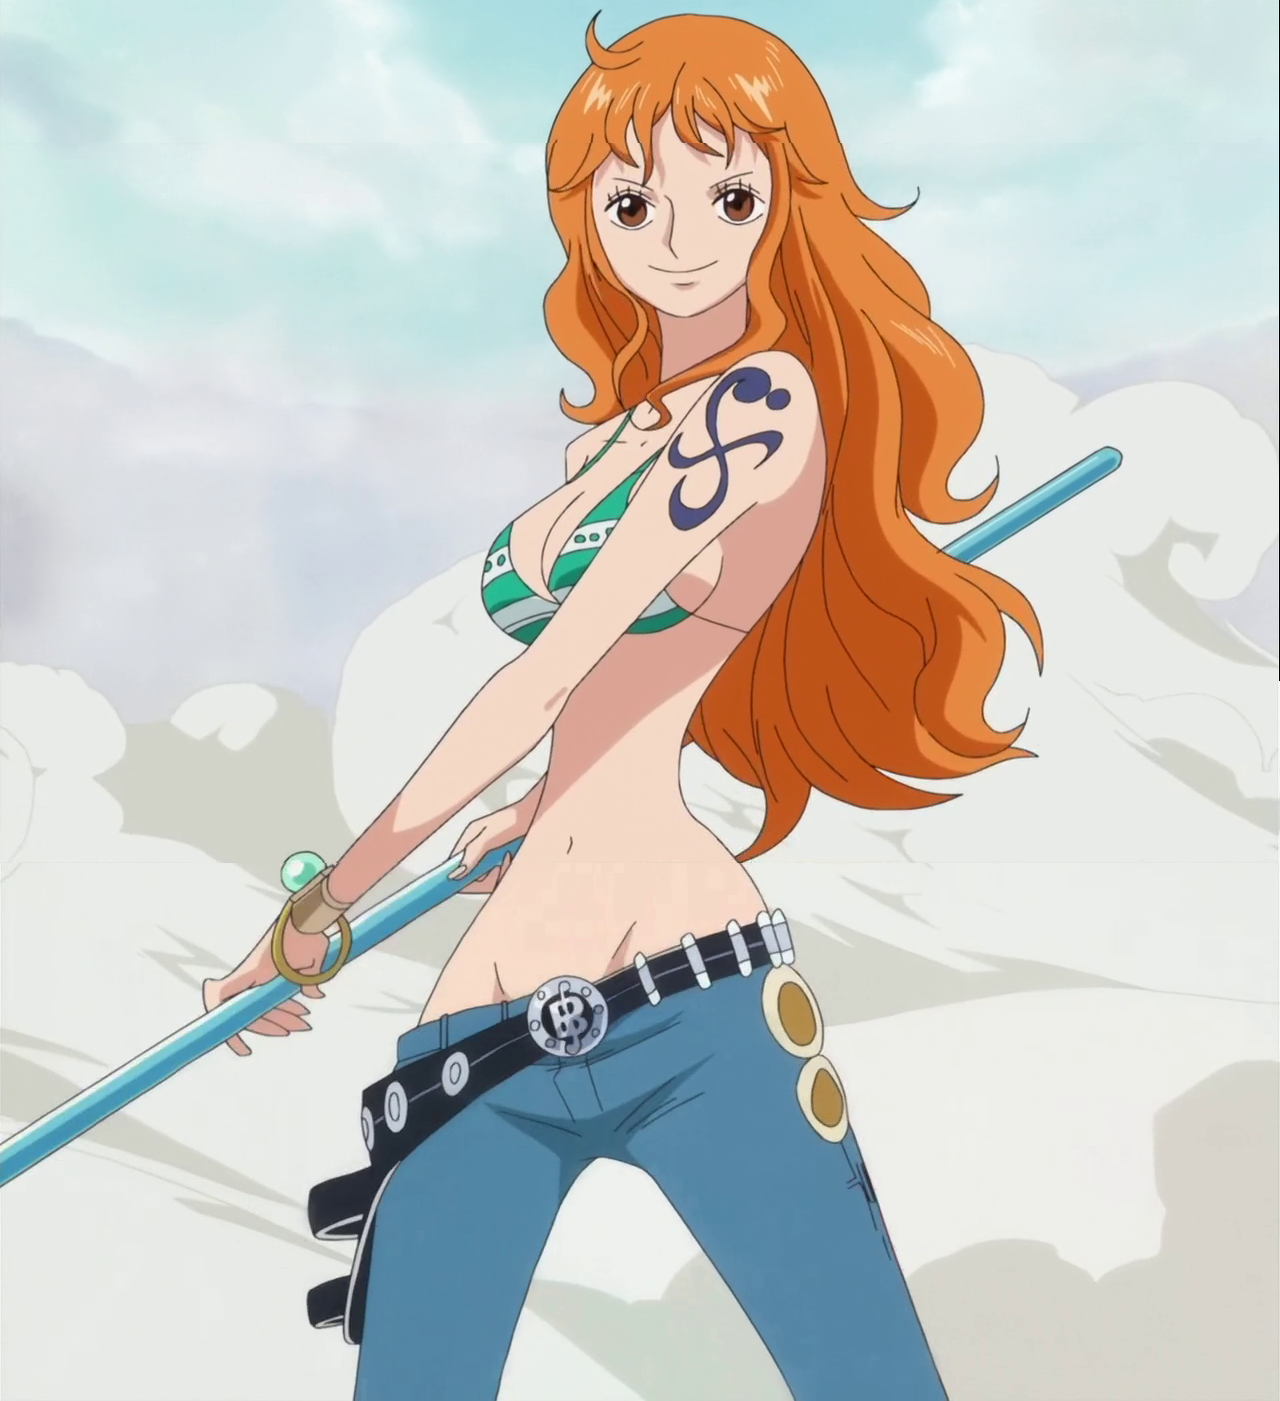 nami from one piece | ☠One⚓Piece☠ | Pinterest | Anime